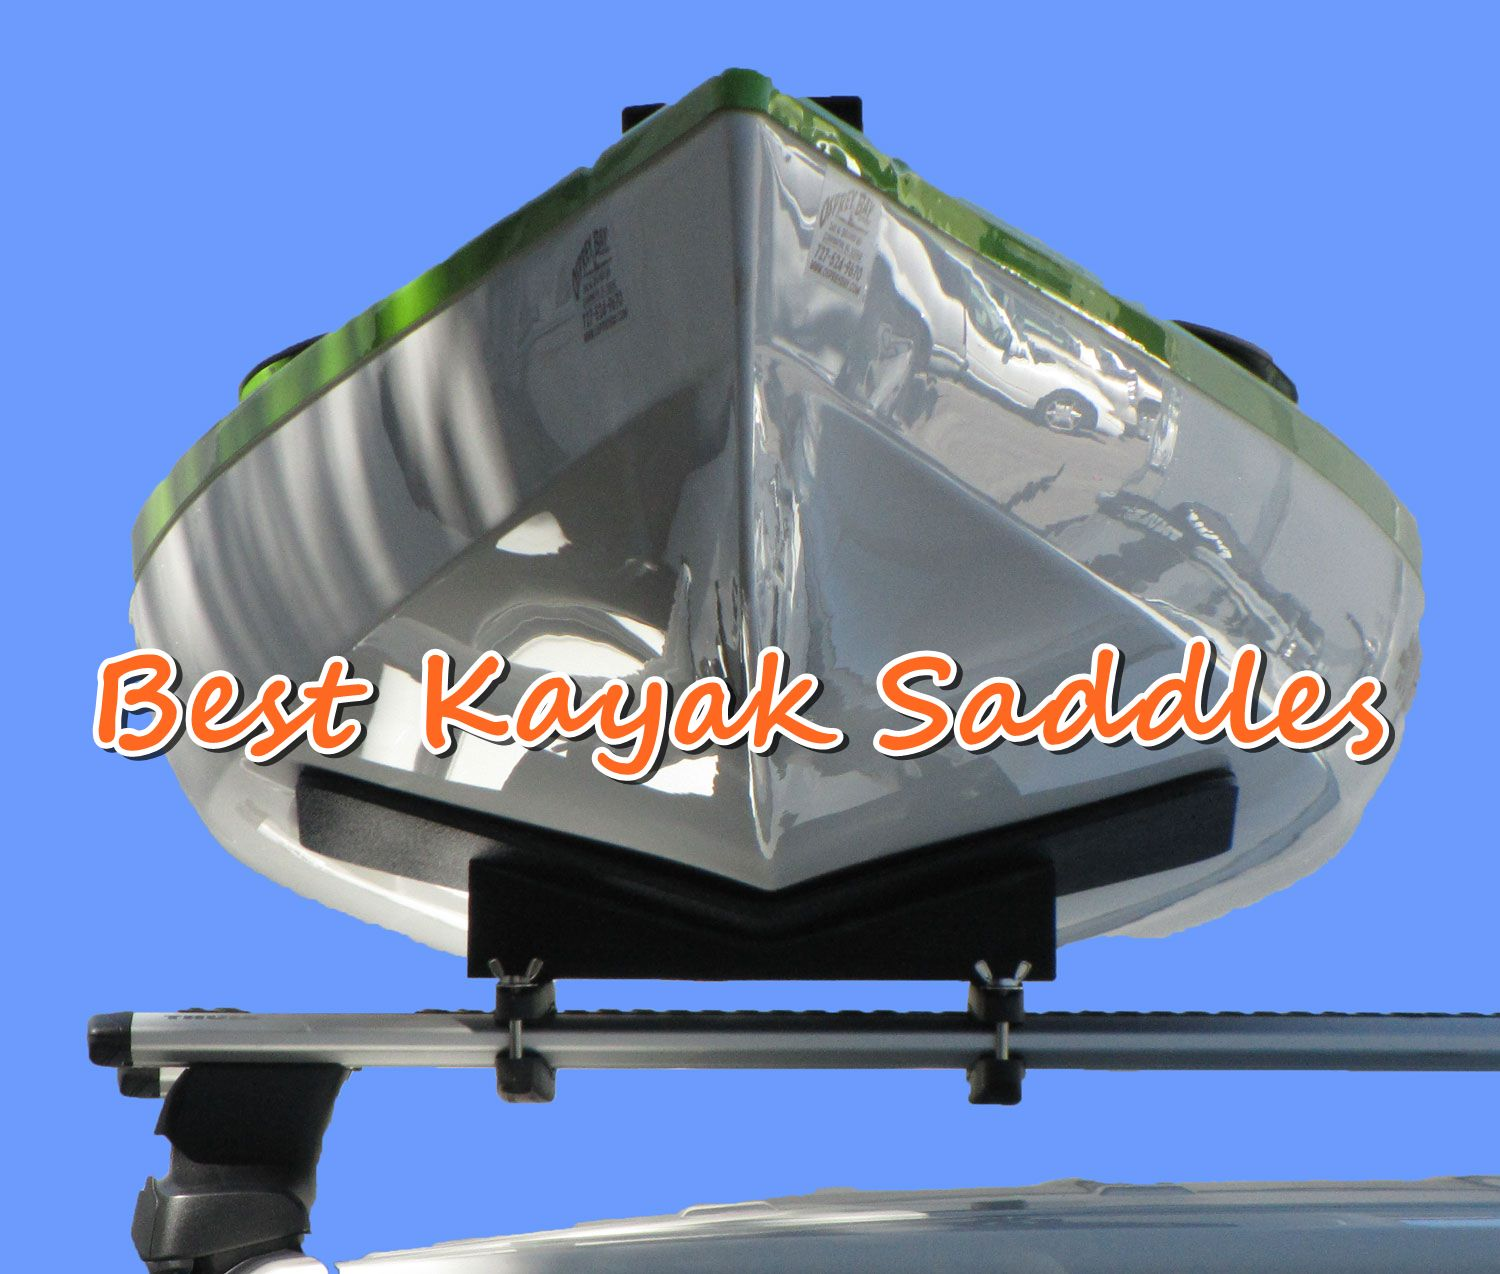 kayak saddles